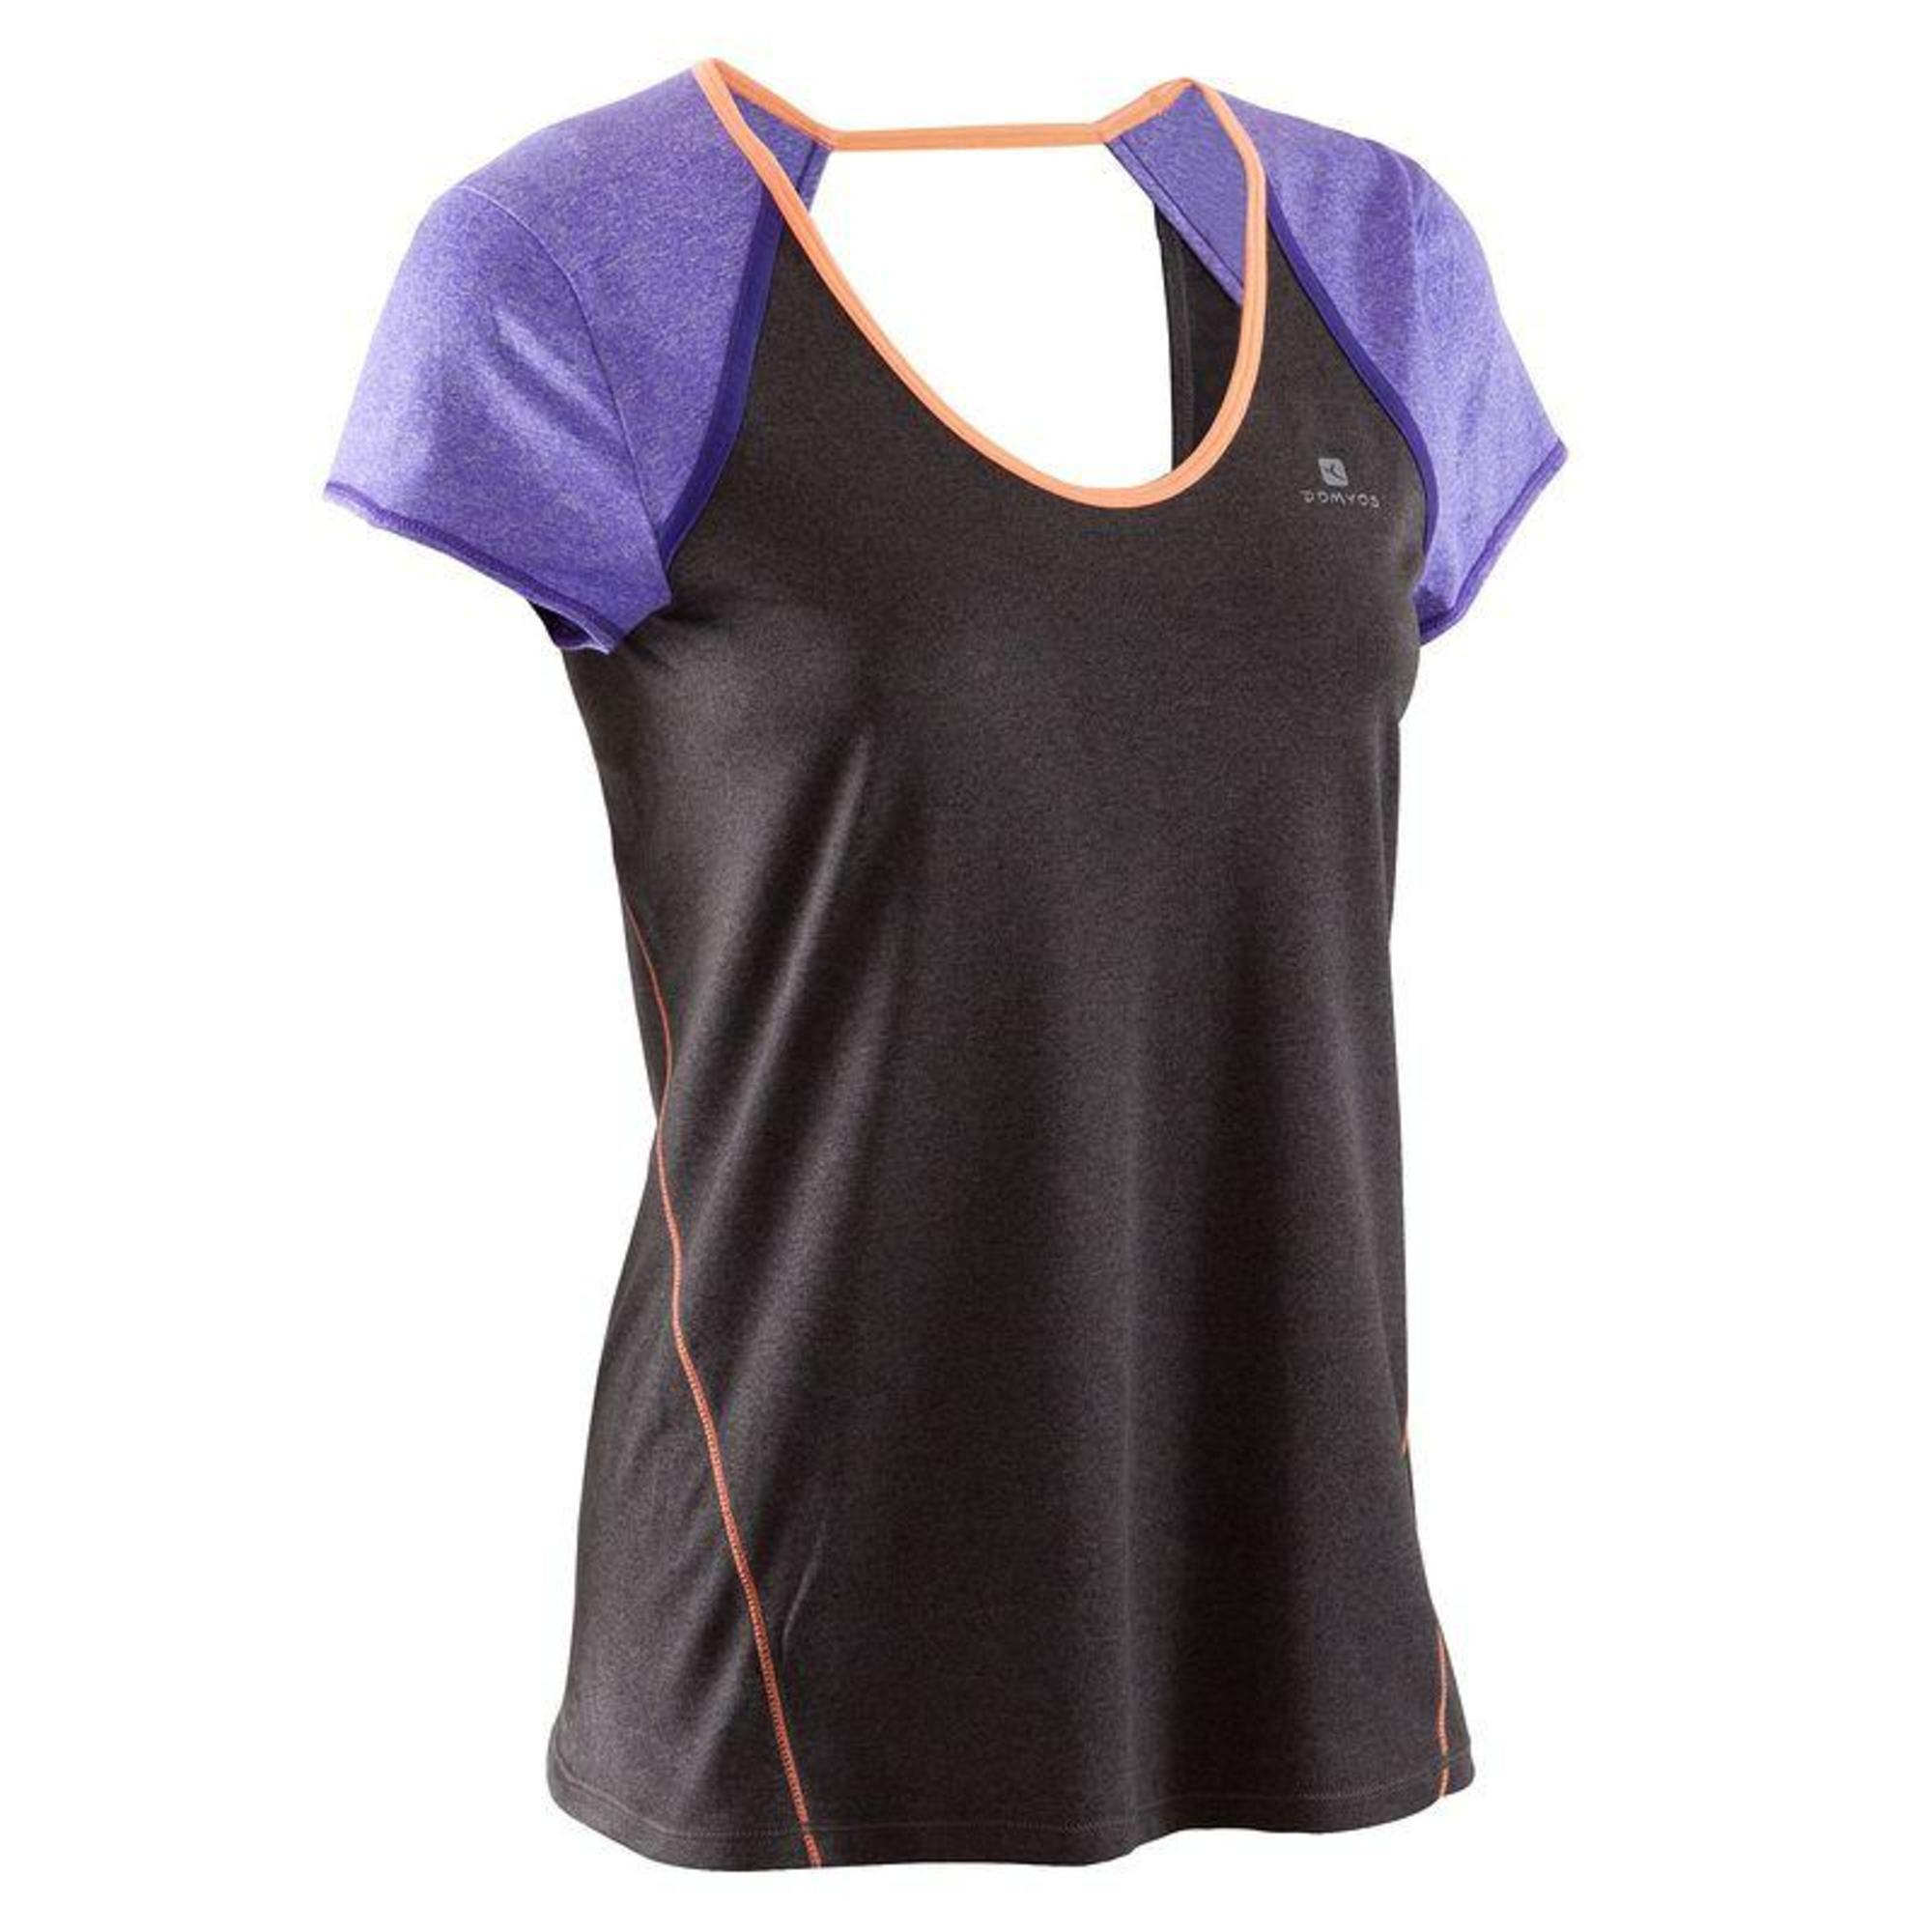 tee shirt breathe gris fonc violet fitness femme domyos. Black Bedroom Furniture Sets. Home Design Ideas